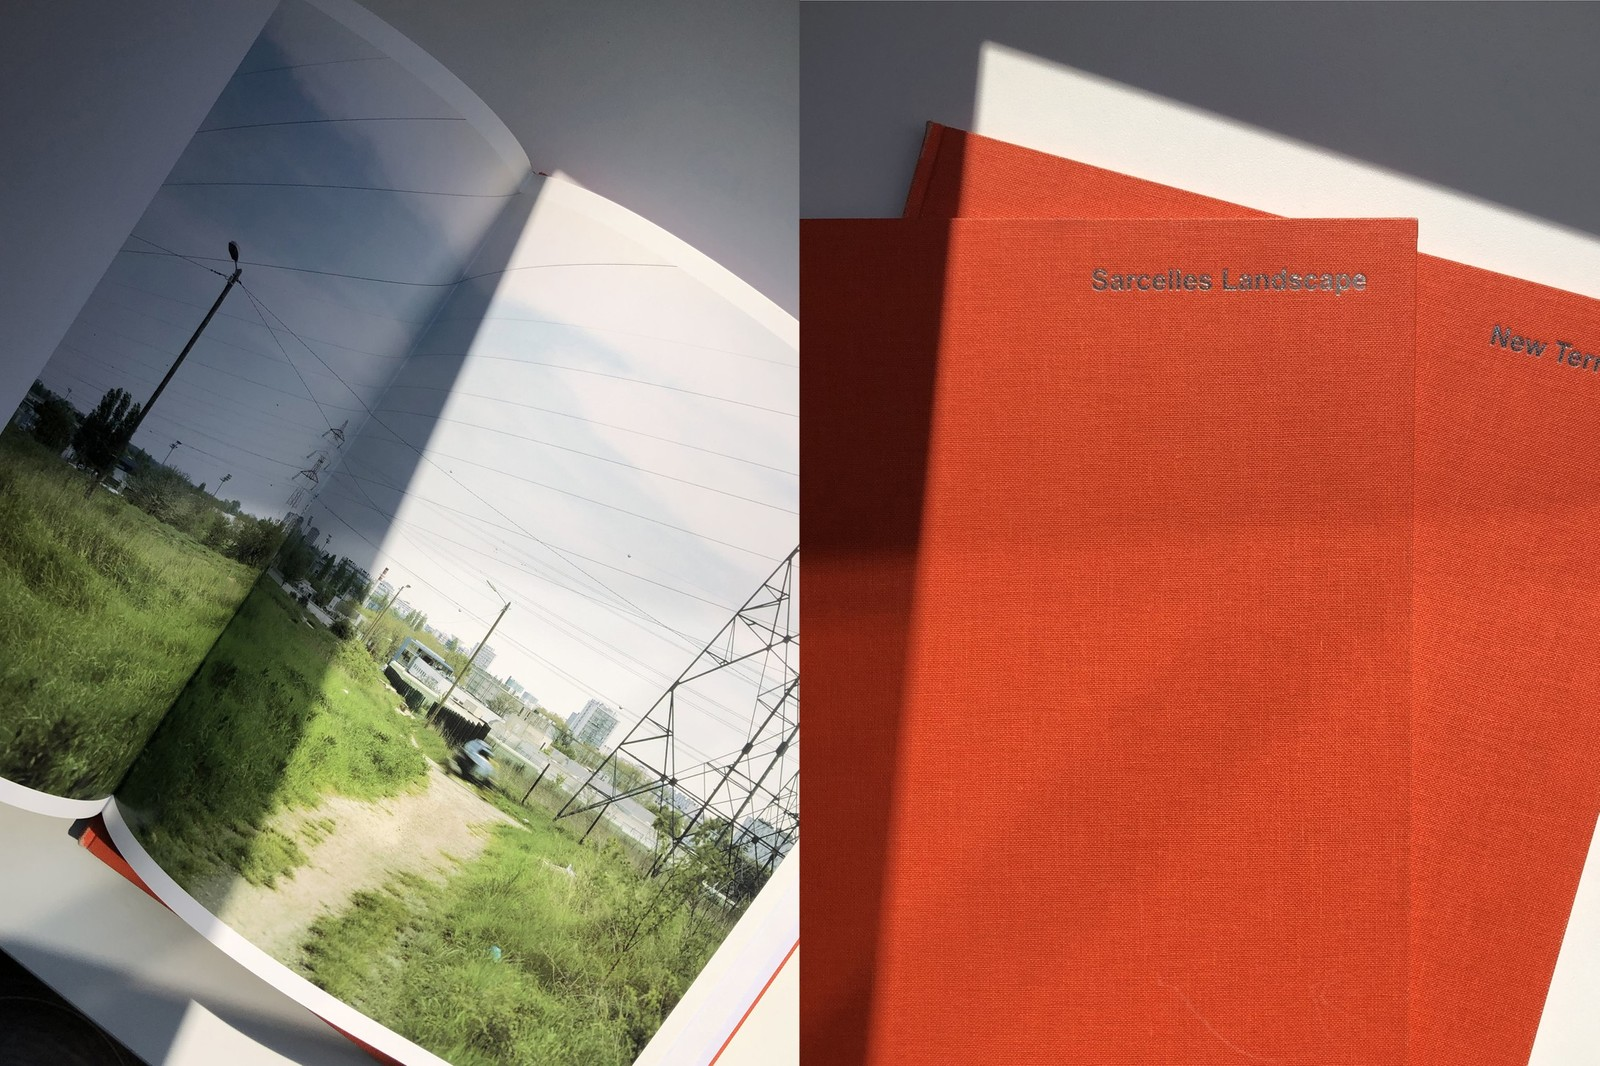 Andrzej Steinback Figur I, Figur II art books etudes  Erica Overmeer Sarcelles Landscape Christopher Williams Printed in Germany Johannes Schwartz The Athens Recorder Paul Graham The whiteness of the whale Roni Horn You are the weather Hayahisa Tomiyasu TTP